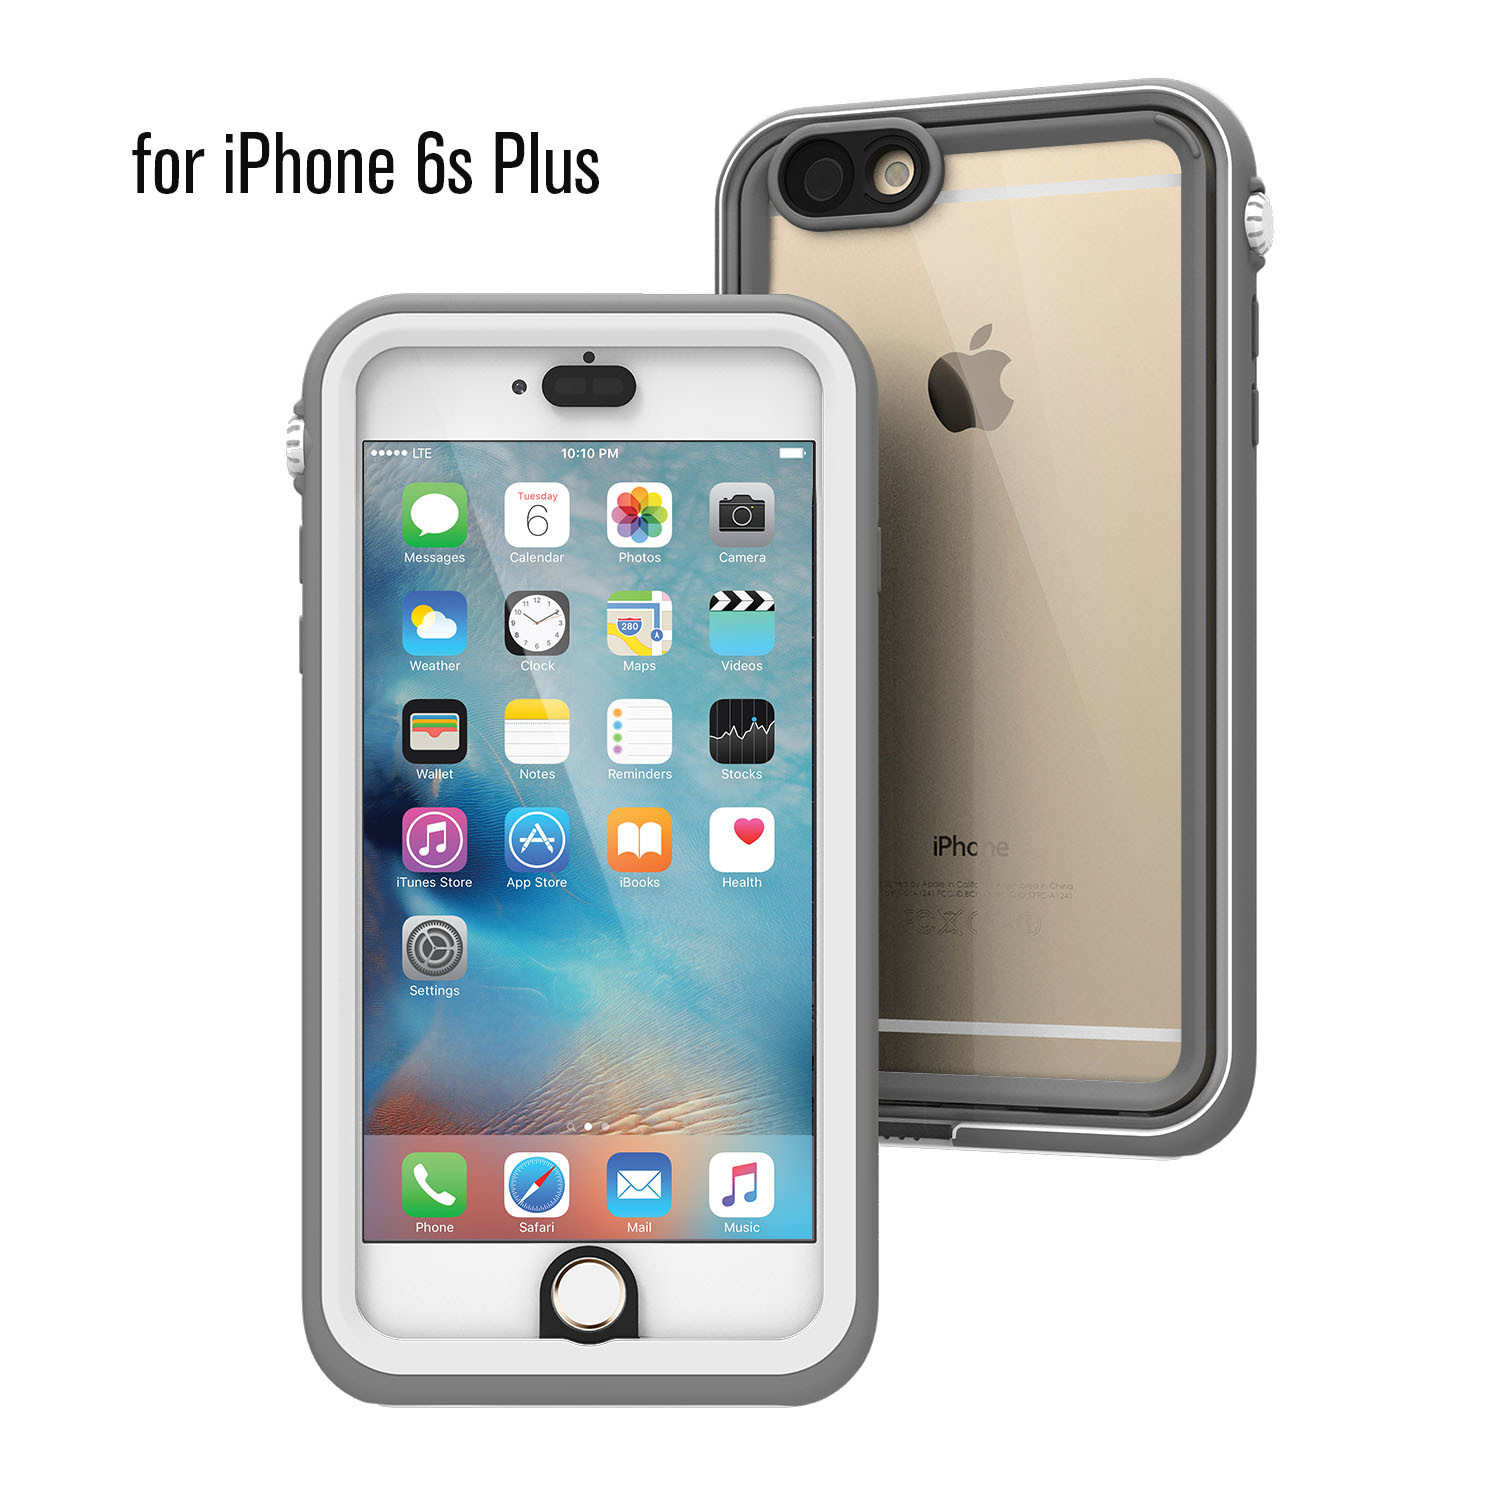 iphone_6s_plus_case__White_misty_grey_3